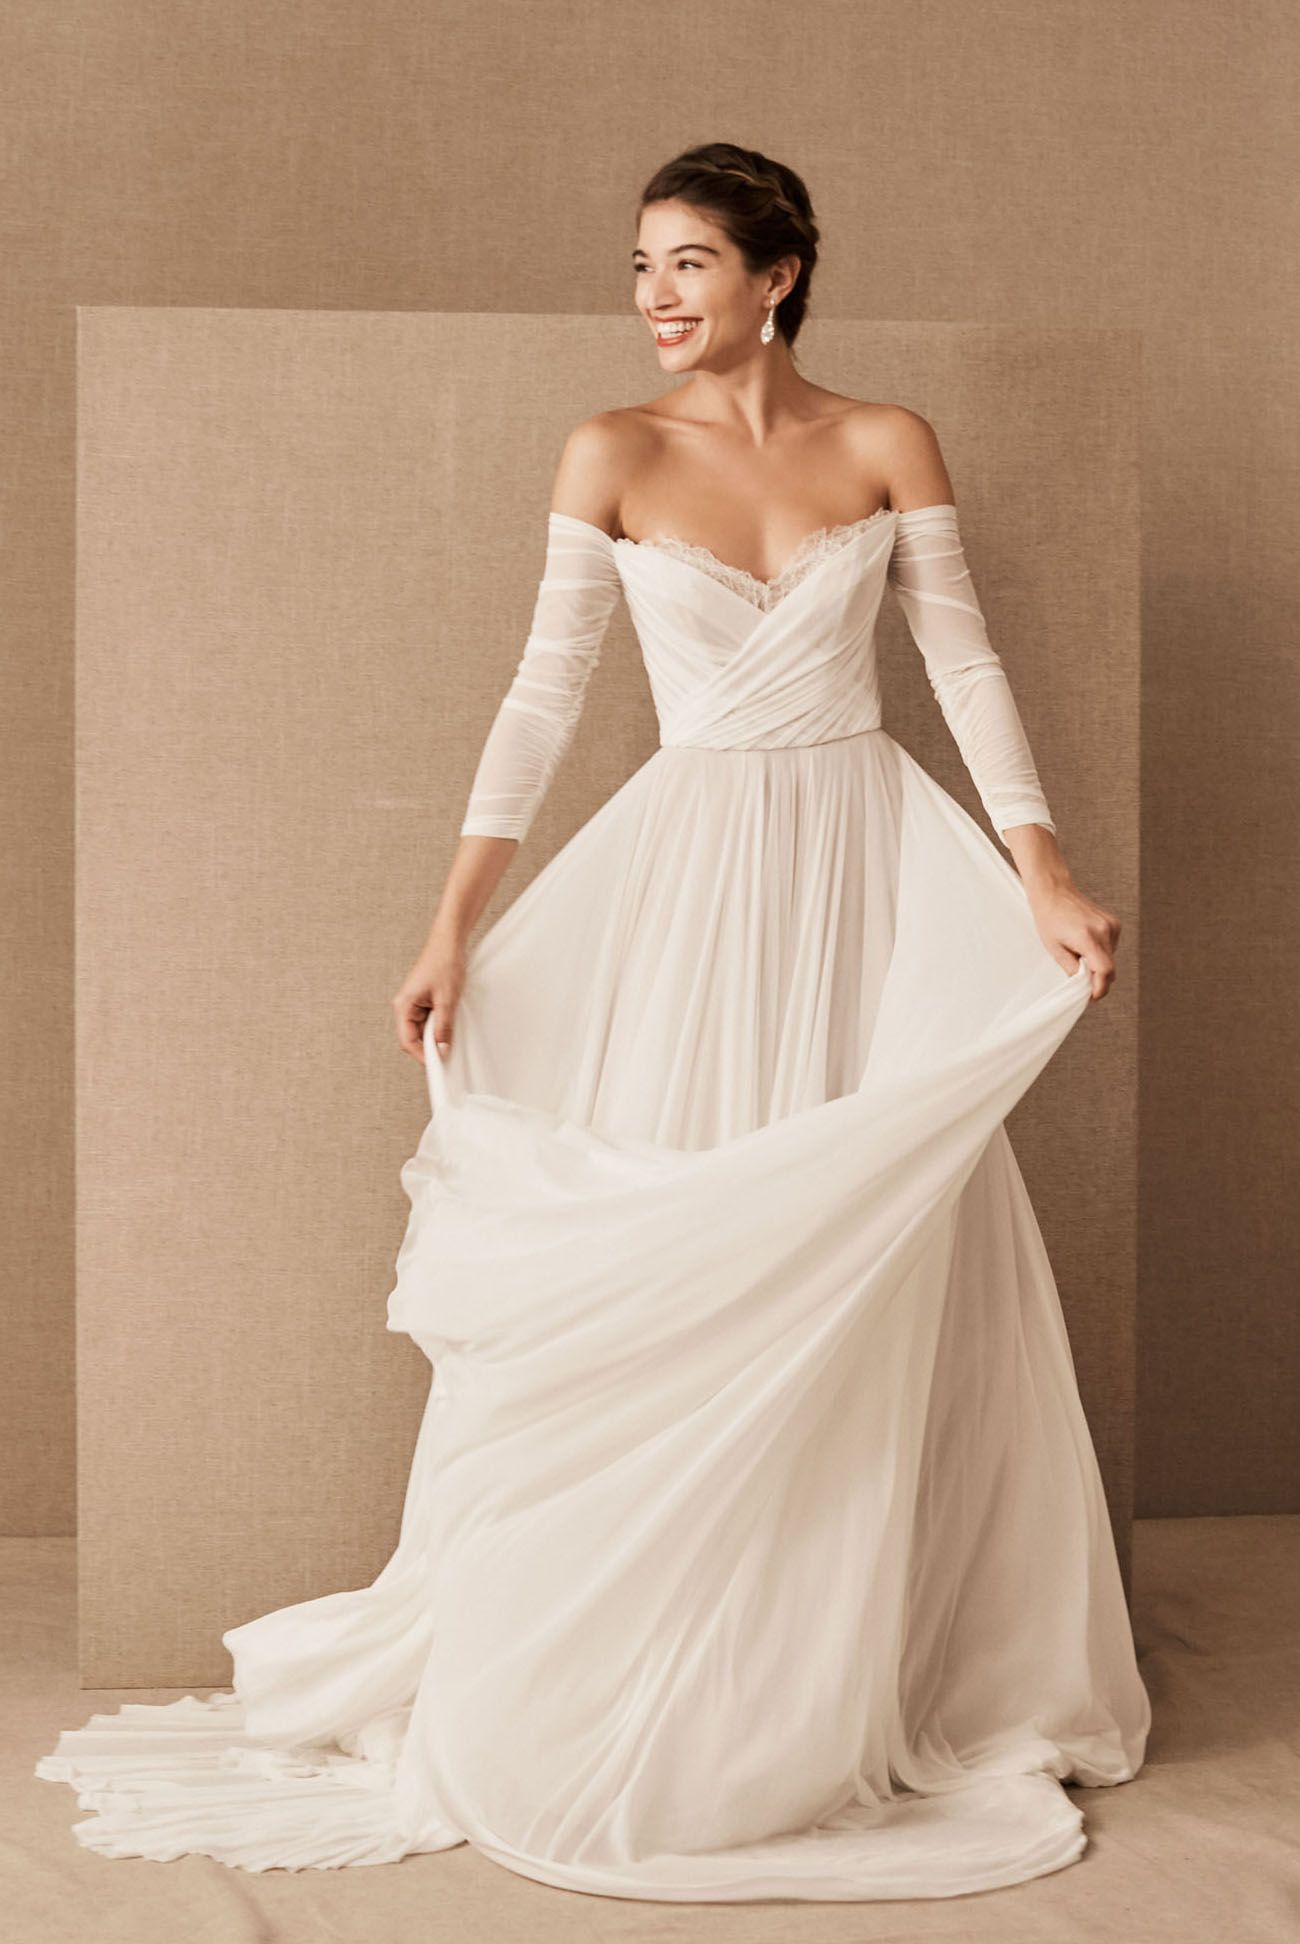 Exclusive Preview Alert: BHLDN's Spring 2020 Gowns are Full of Whimsy and Delicate Details | ...